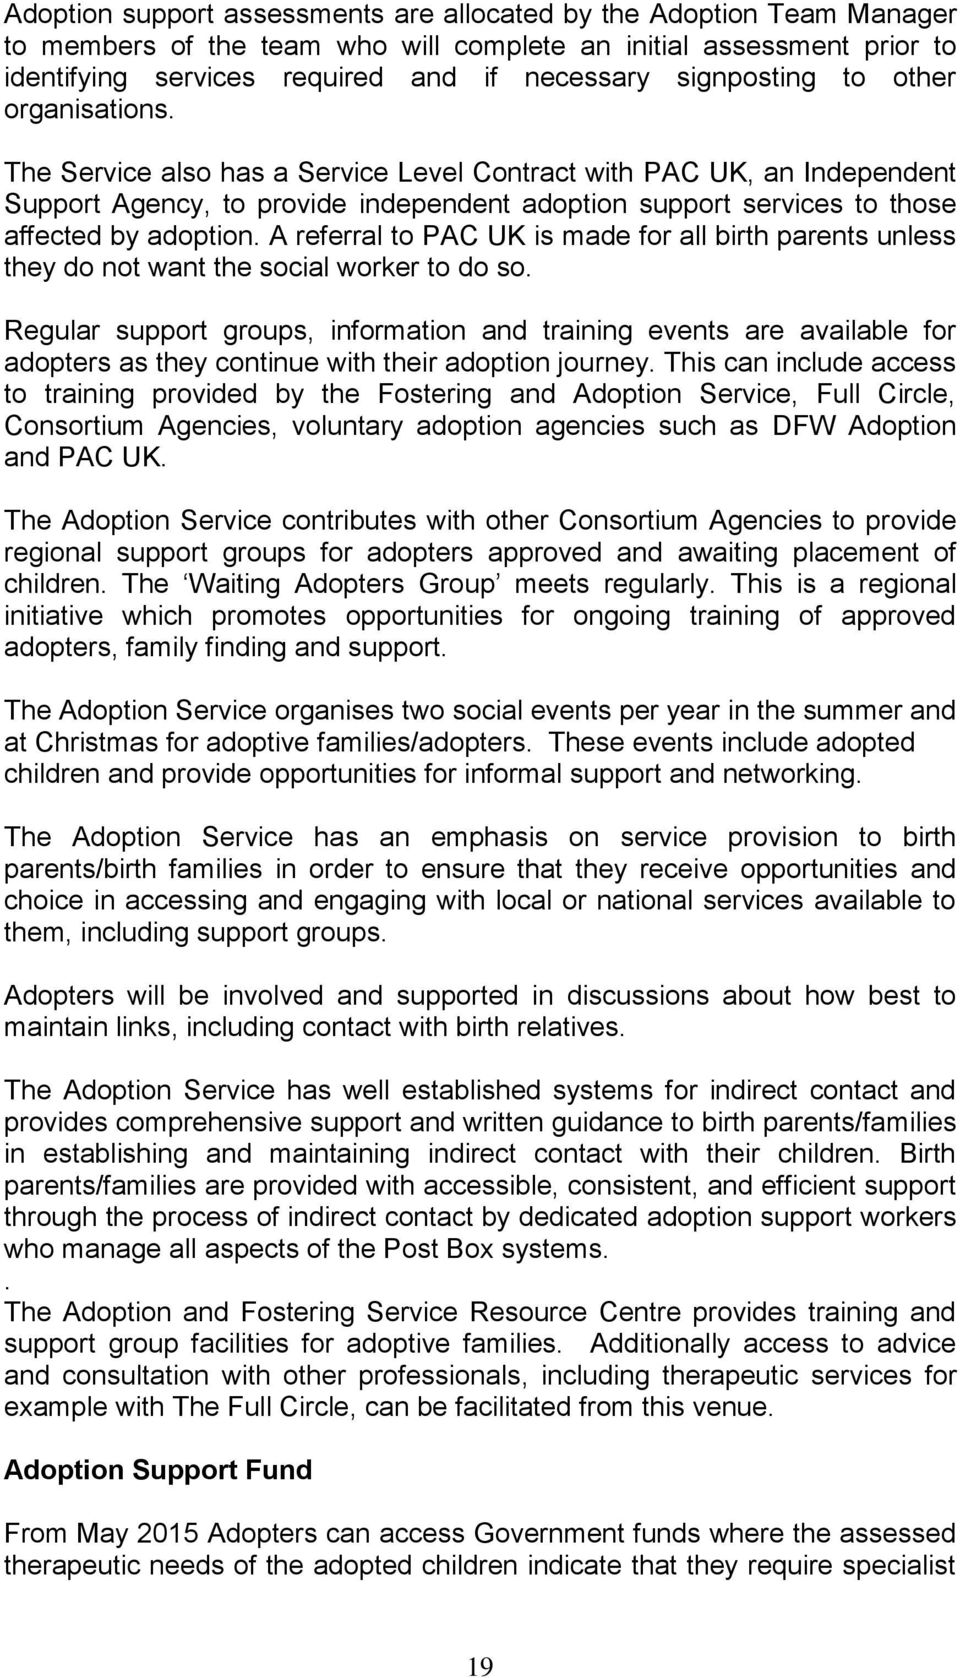 The Service also has a Service Level Contract with PAC UK, an Independent Support Agency, to provide independent adoption support services to those affected by adoption.